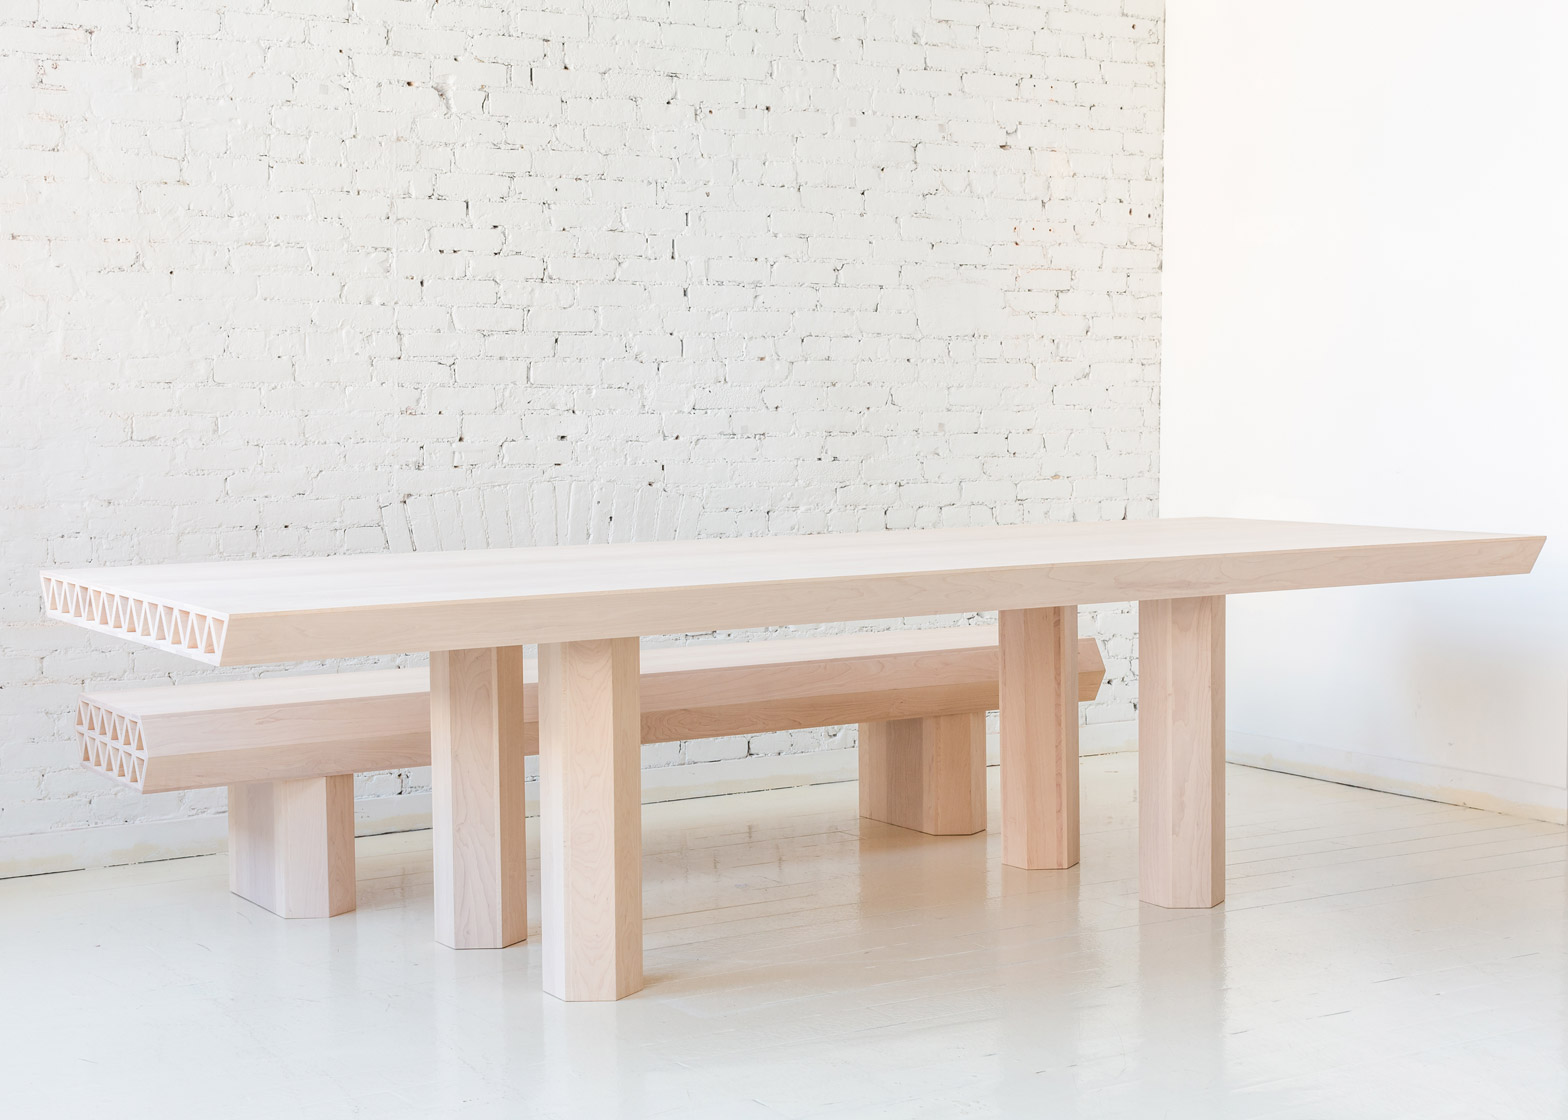 Qualities of Material furniture by Fort Standard at New York Design Week 2016